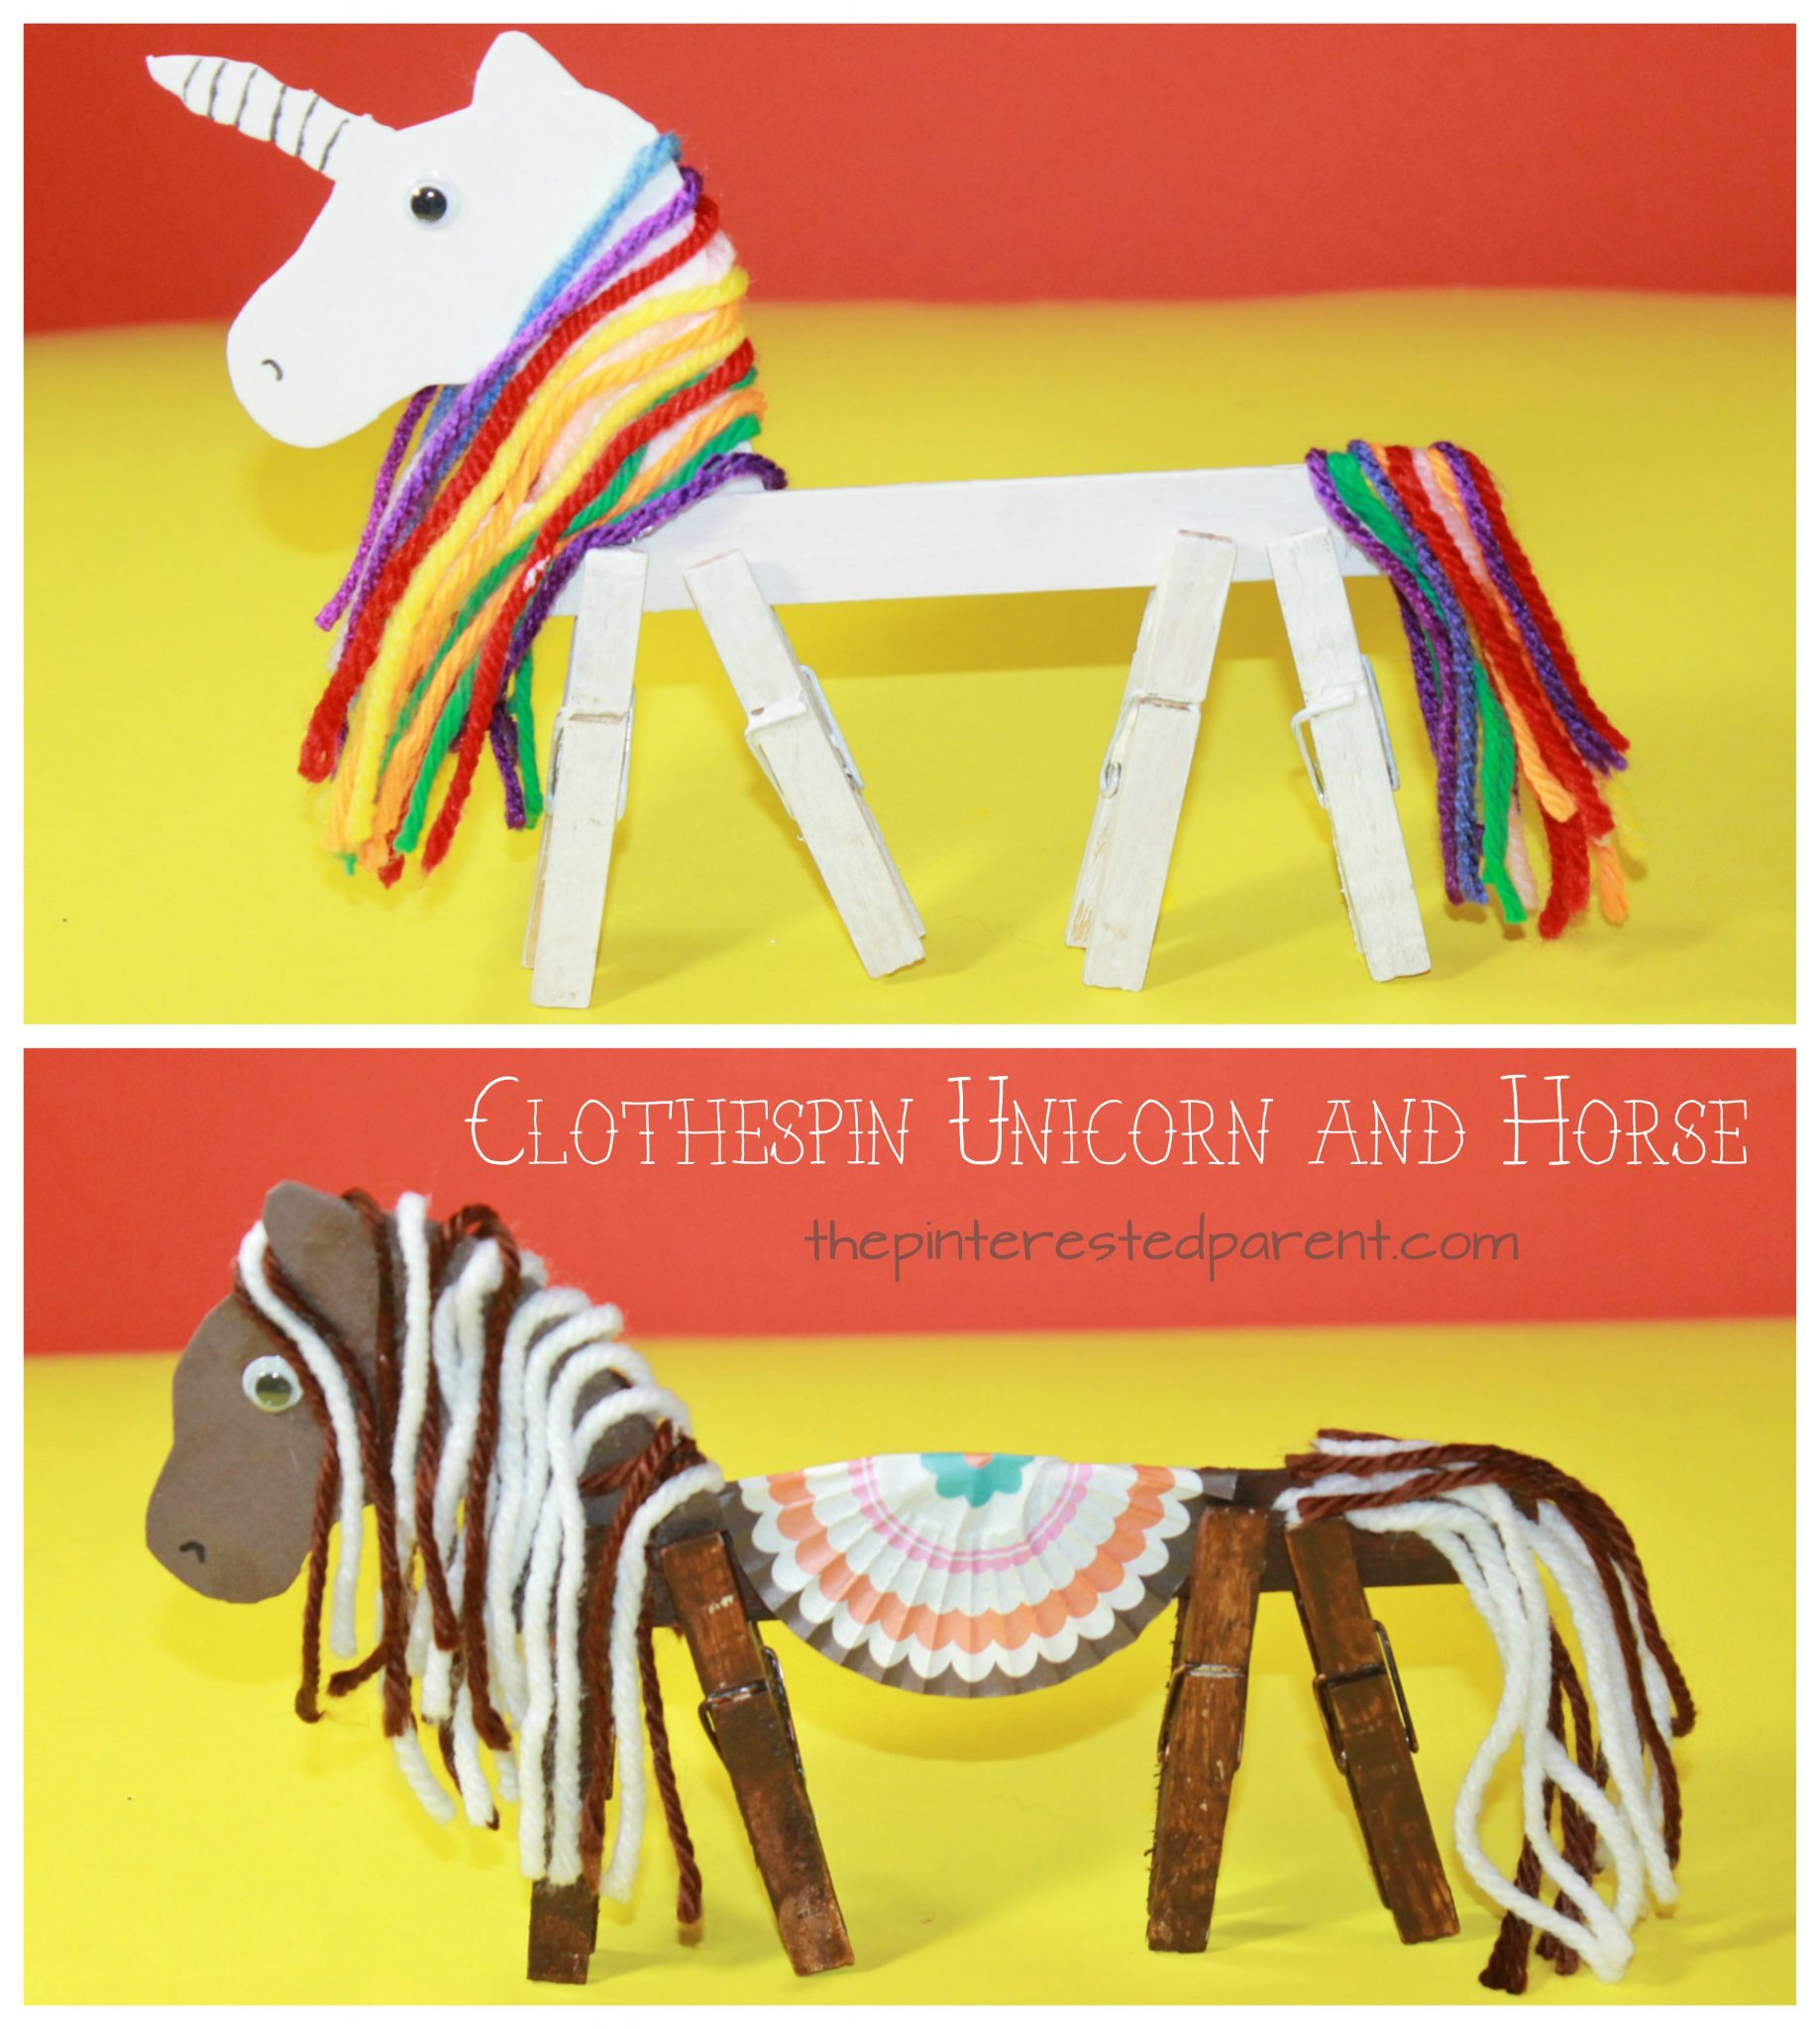 Clothespin Horse Unicorn – The Pinterested Parent